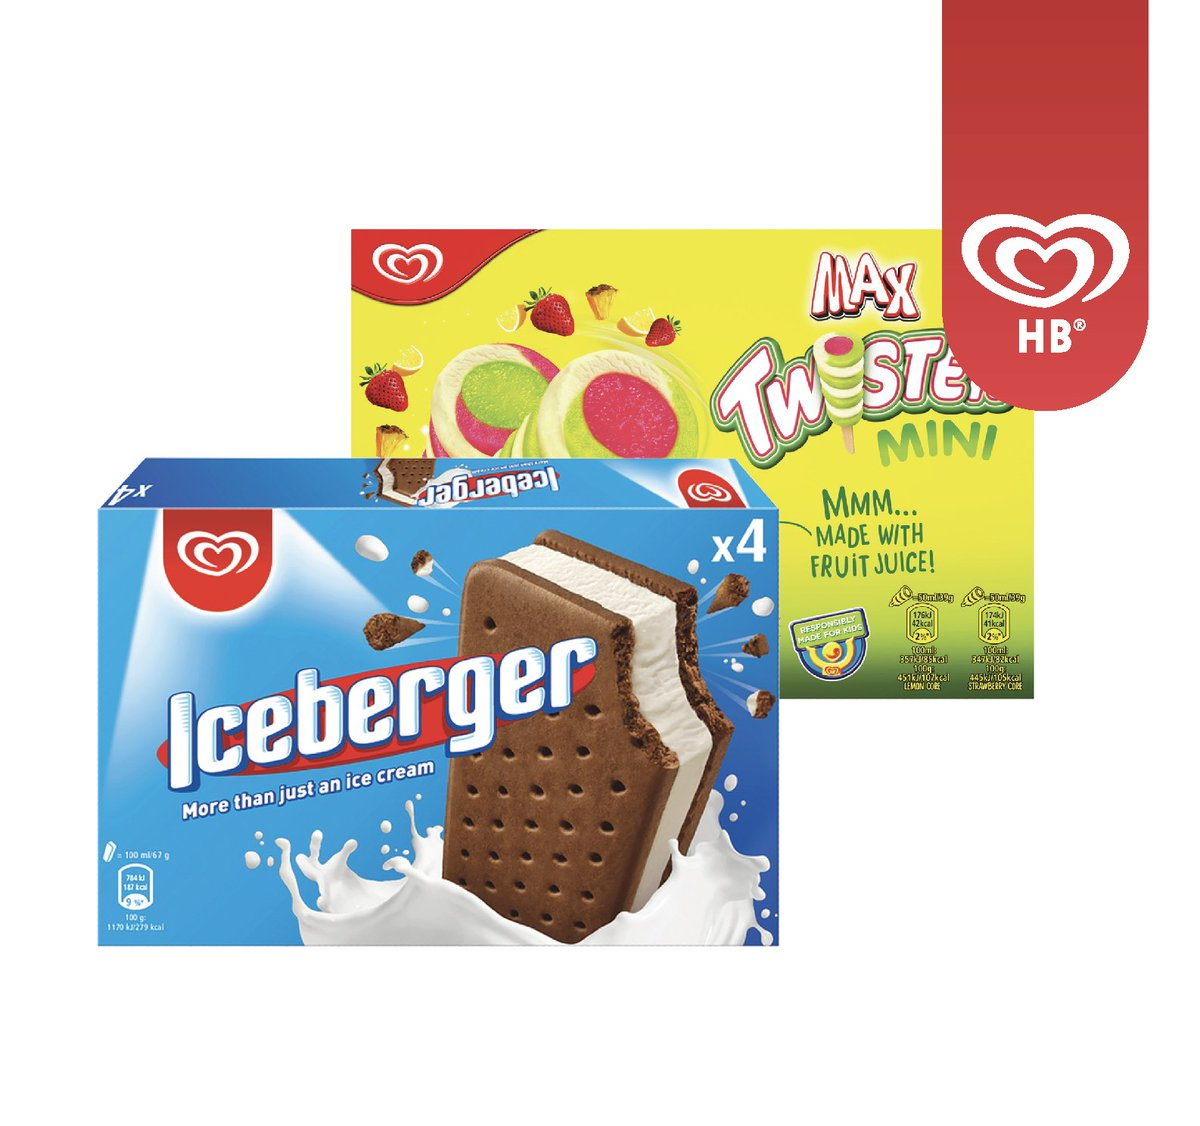 2 for €5 HB MAGNUM DOUBLES/TWISTER MINI/CALIPPO/ICEBERGER/CHOC ICE/MINIONS 3 - 8 PACK https://t.co/XiGBNp3uCY